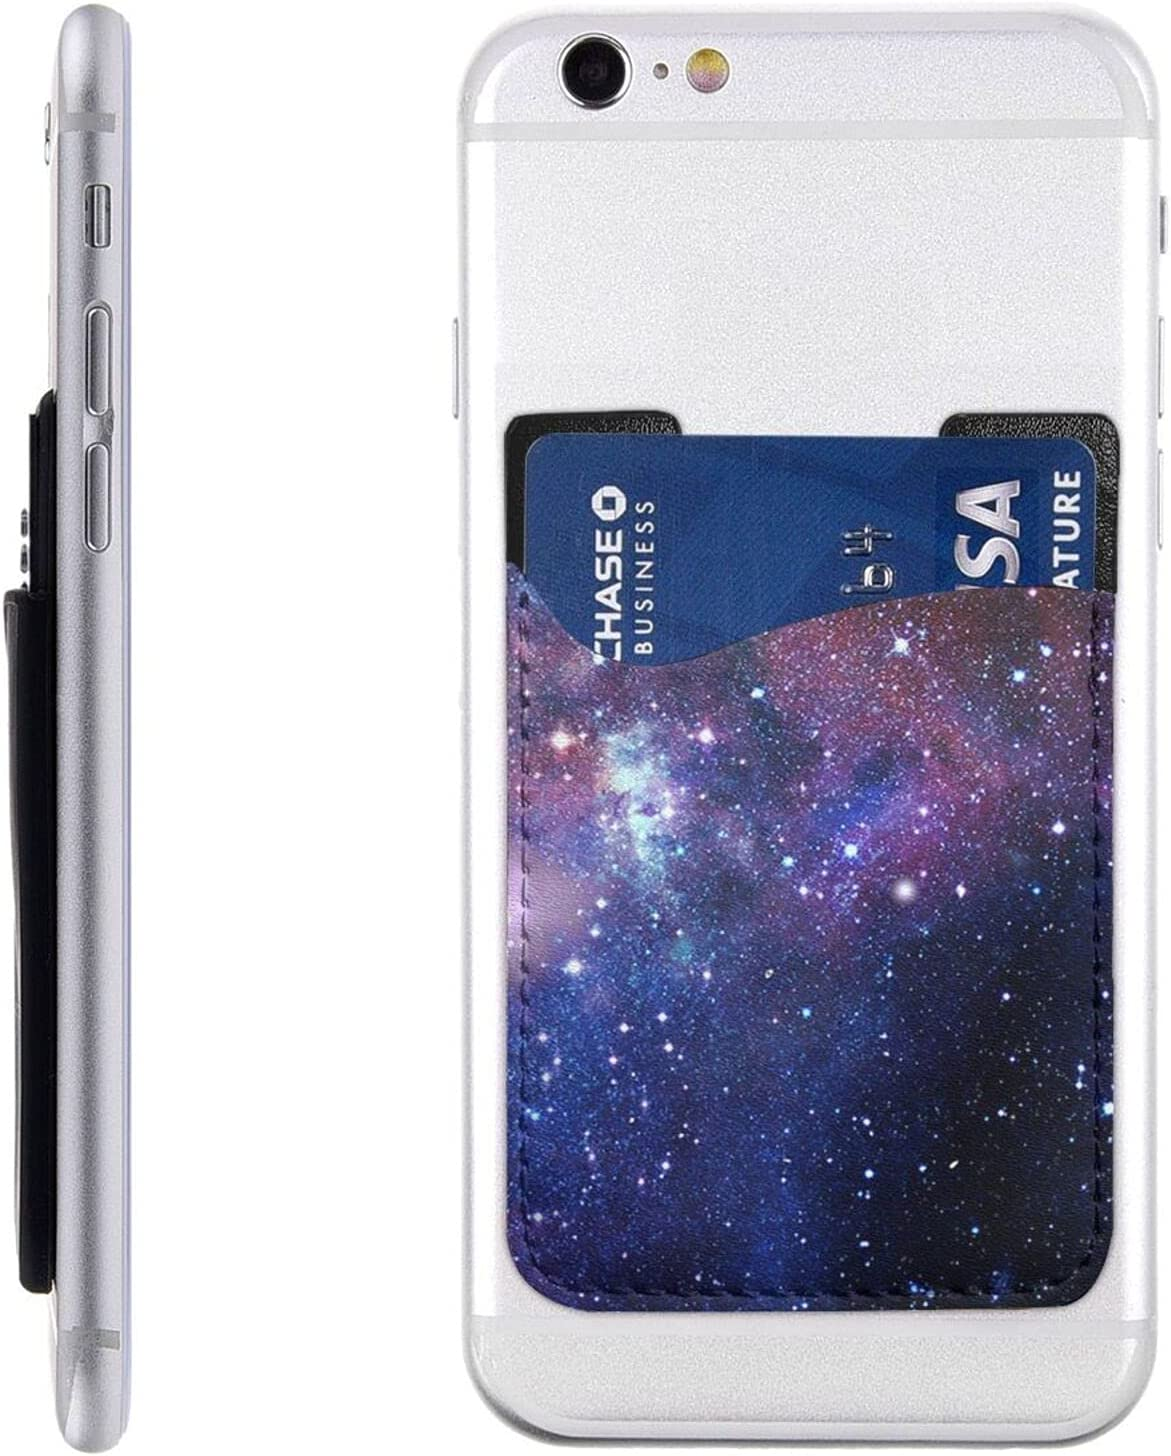 Blue Purple Galaxy Phone Card Max 59% OFF Max 90% OFF Cell On Holder Stick